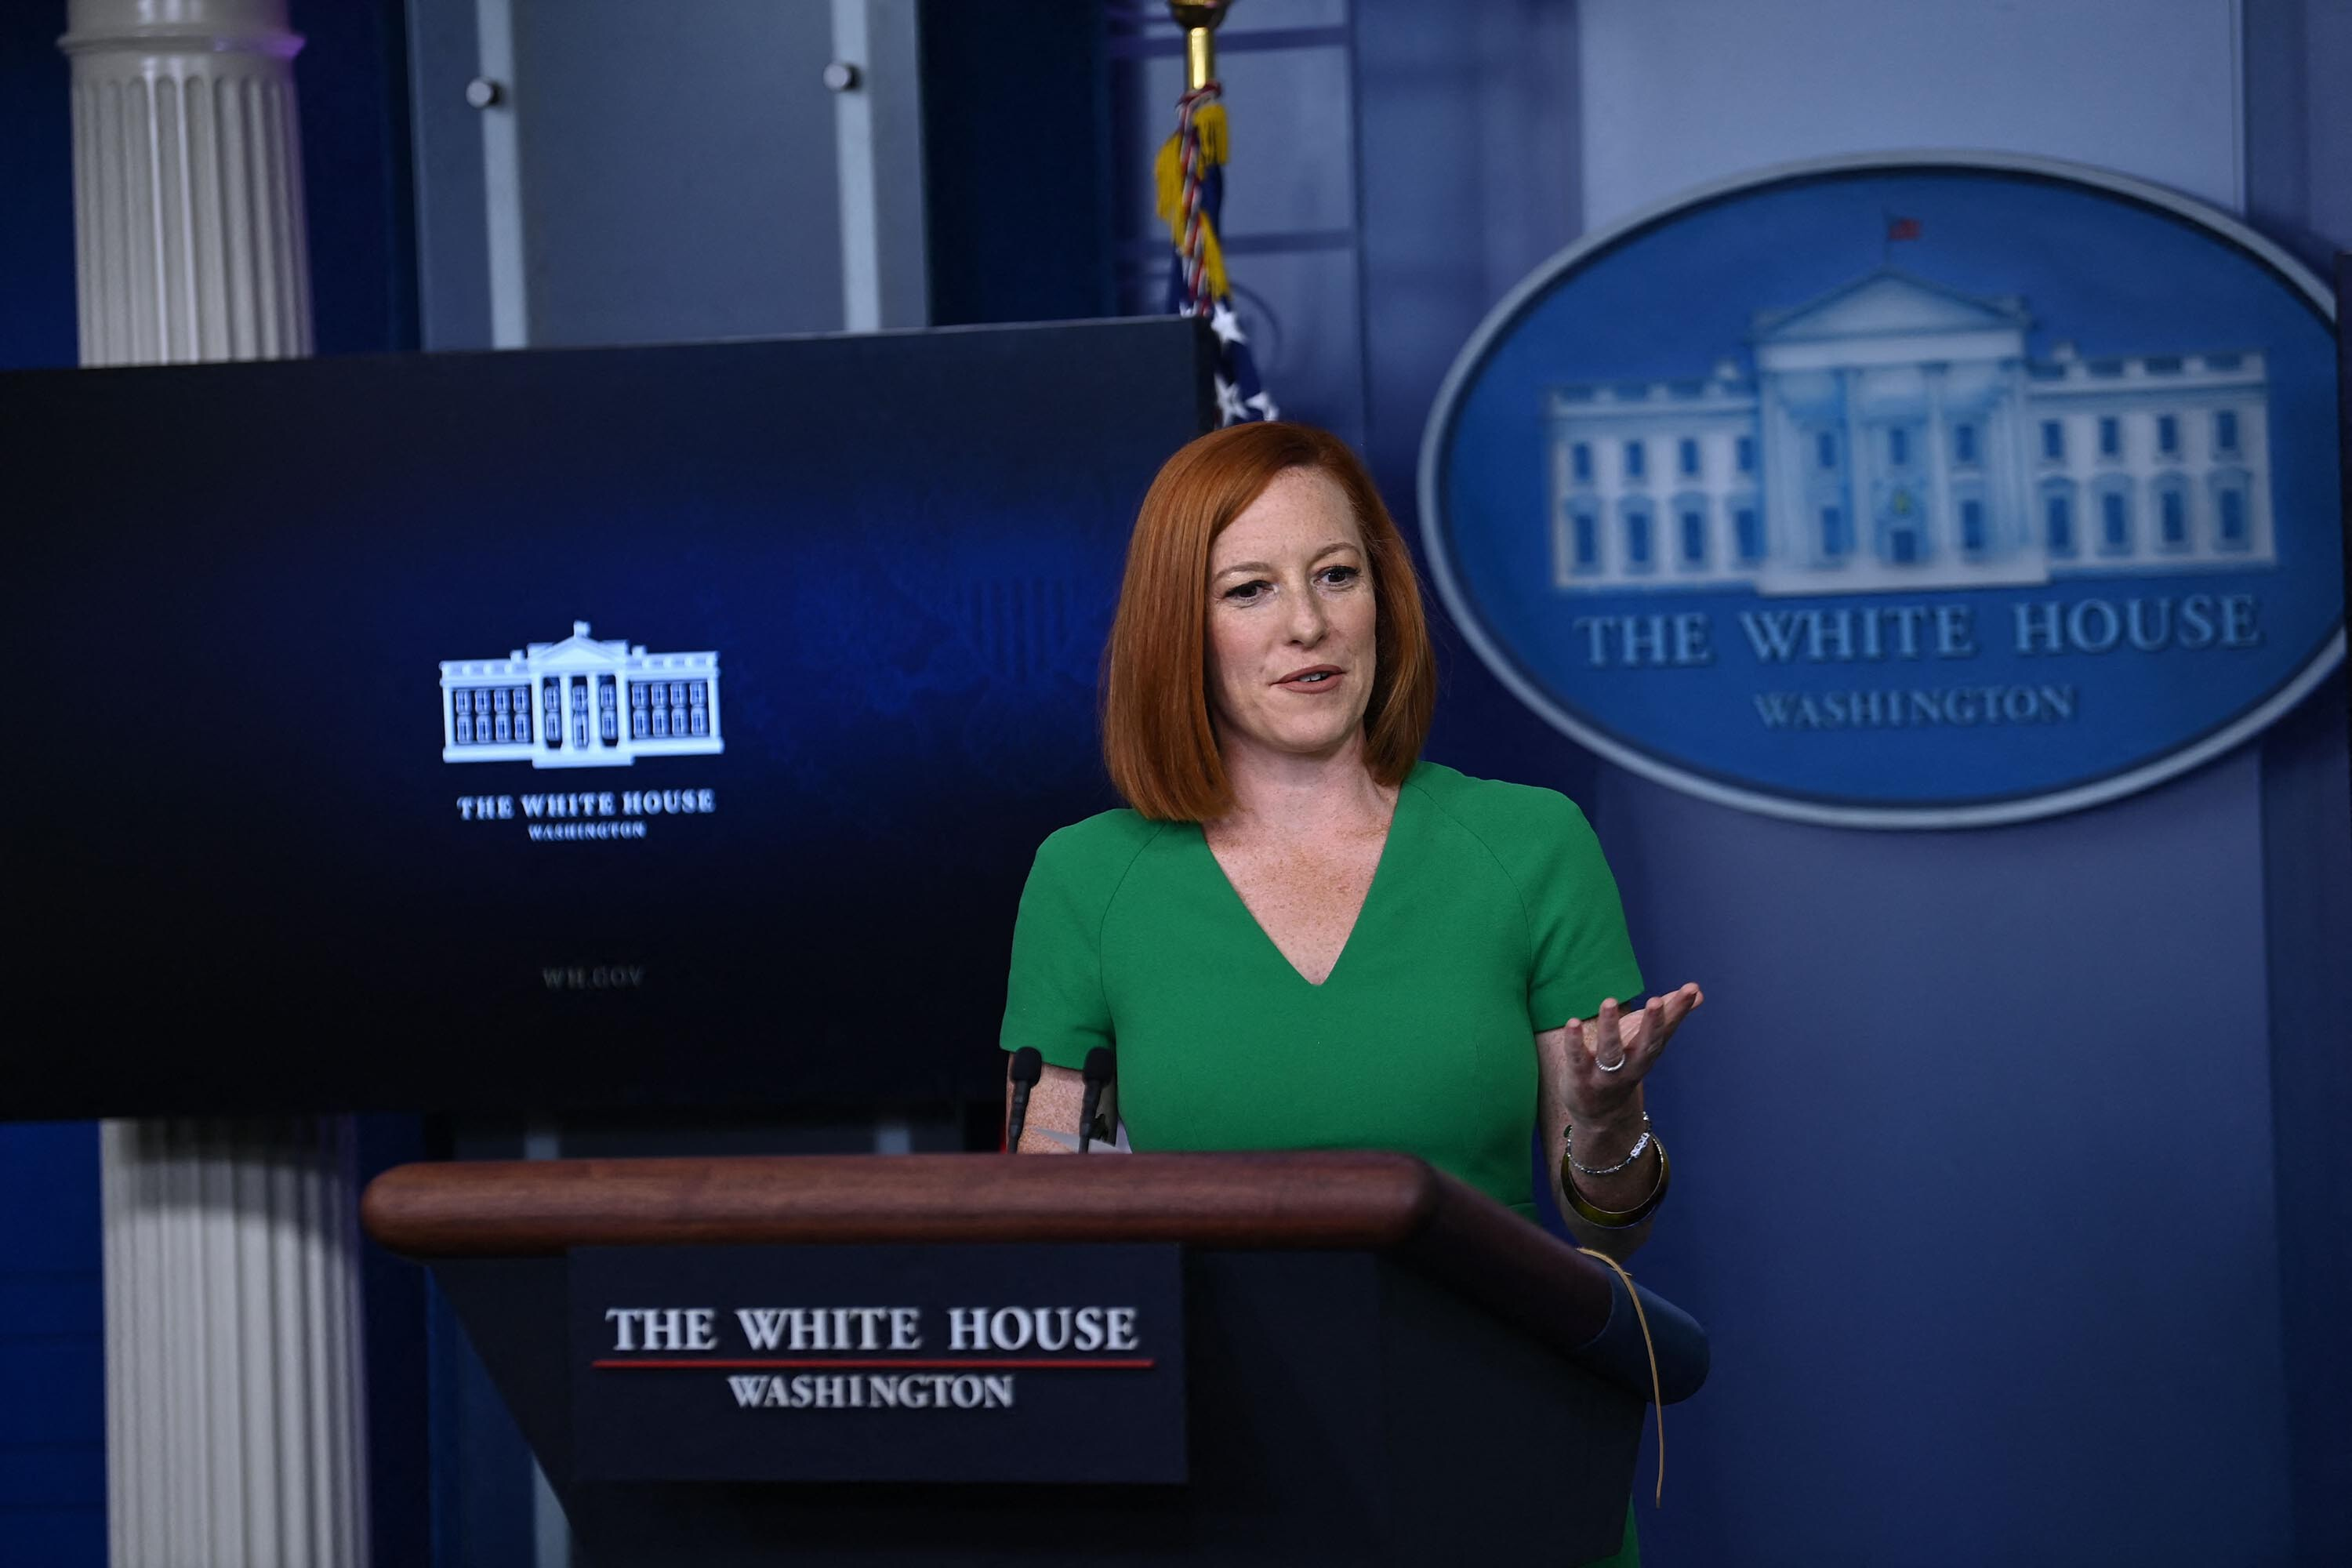 Watchdog files Hatch Act complaint against Jen Psaki over comments on Virginia governor's race